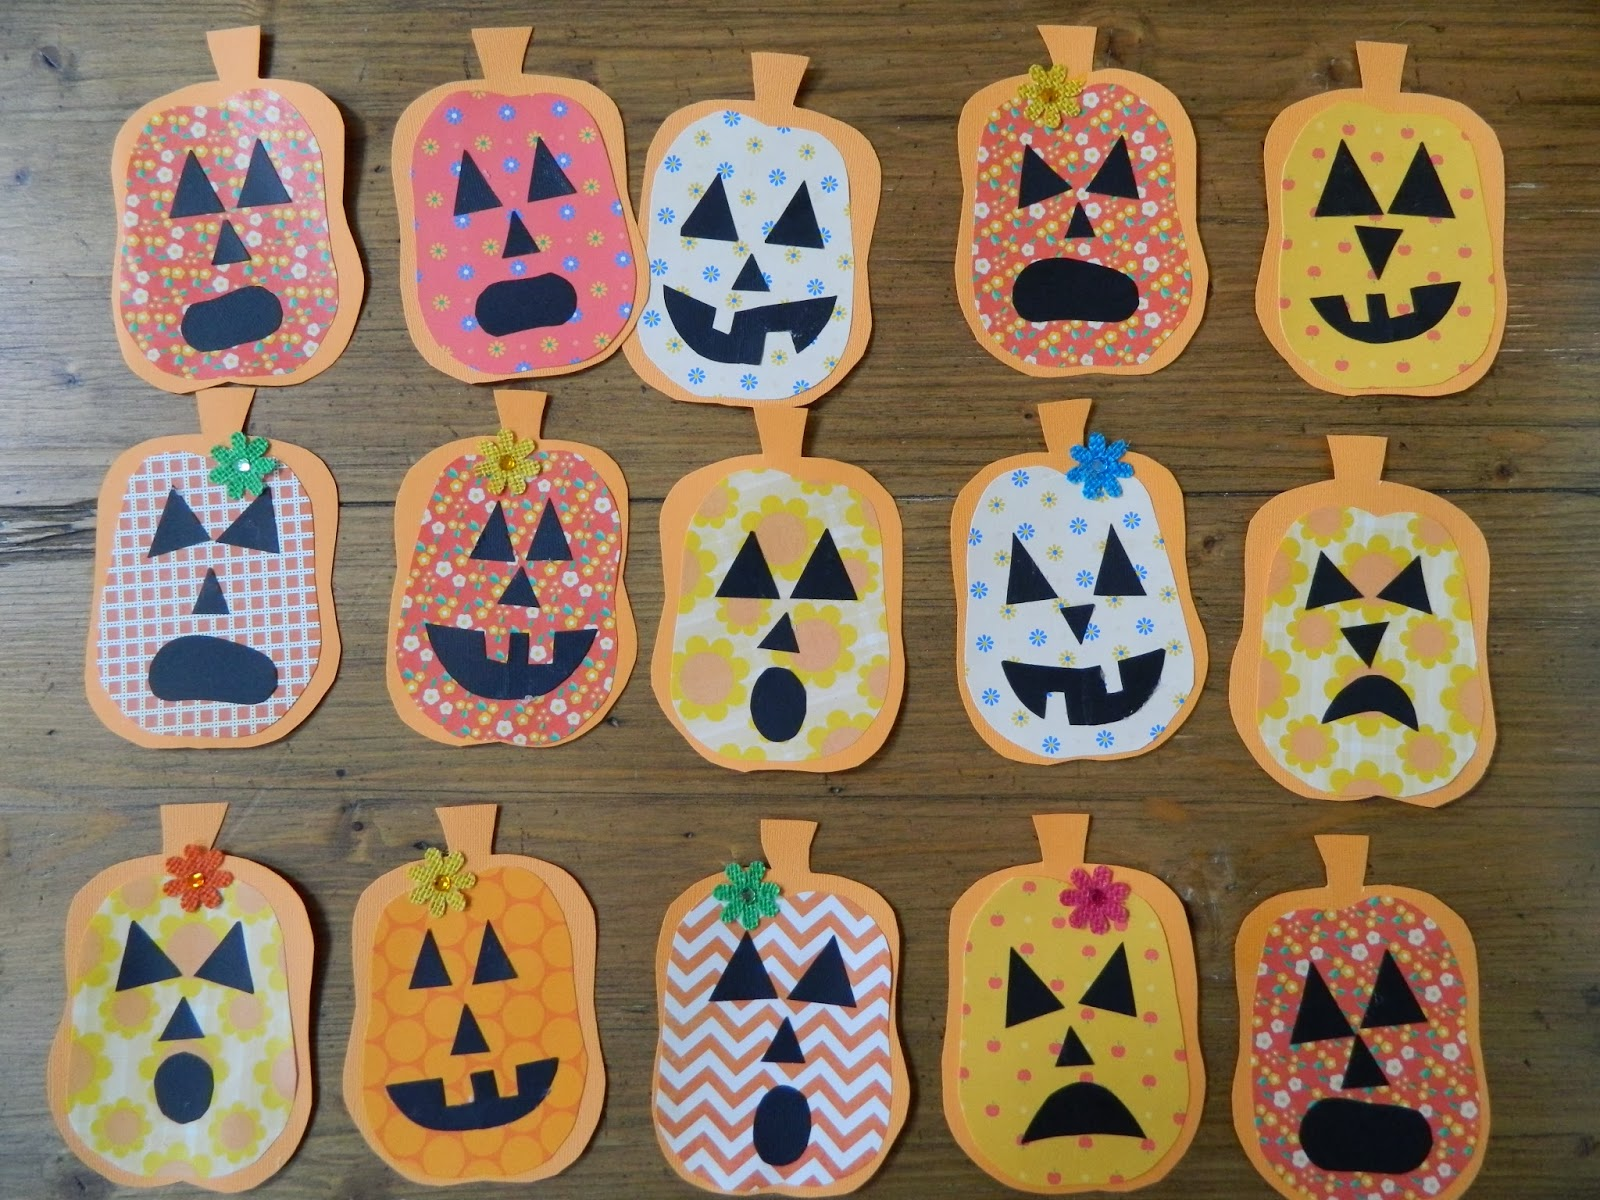 The Vintage Umbrella Preschool Halloween Projects